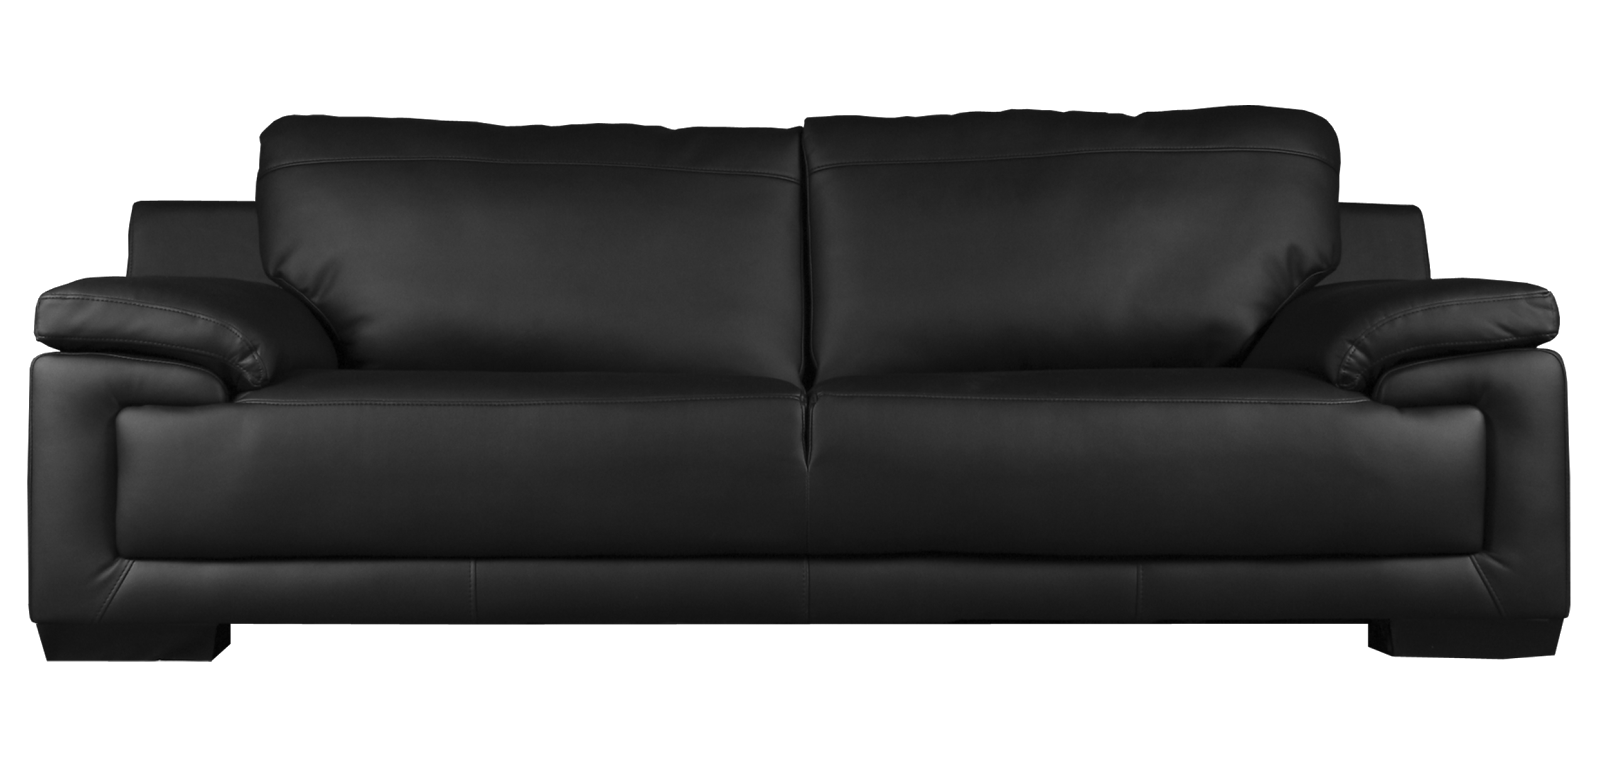 Black Couch Transparent Png Clipart Free Download Ya Webdesign